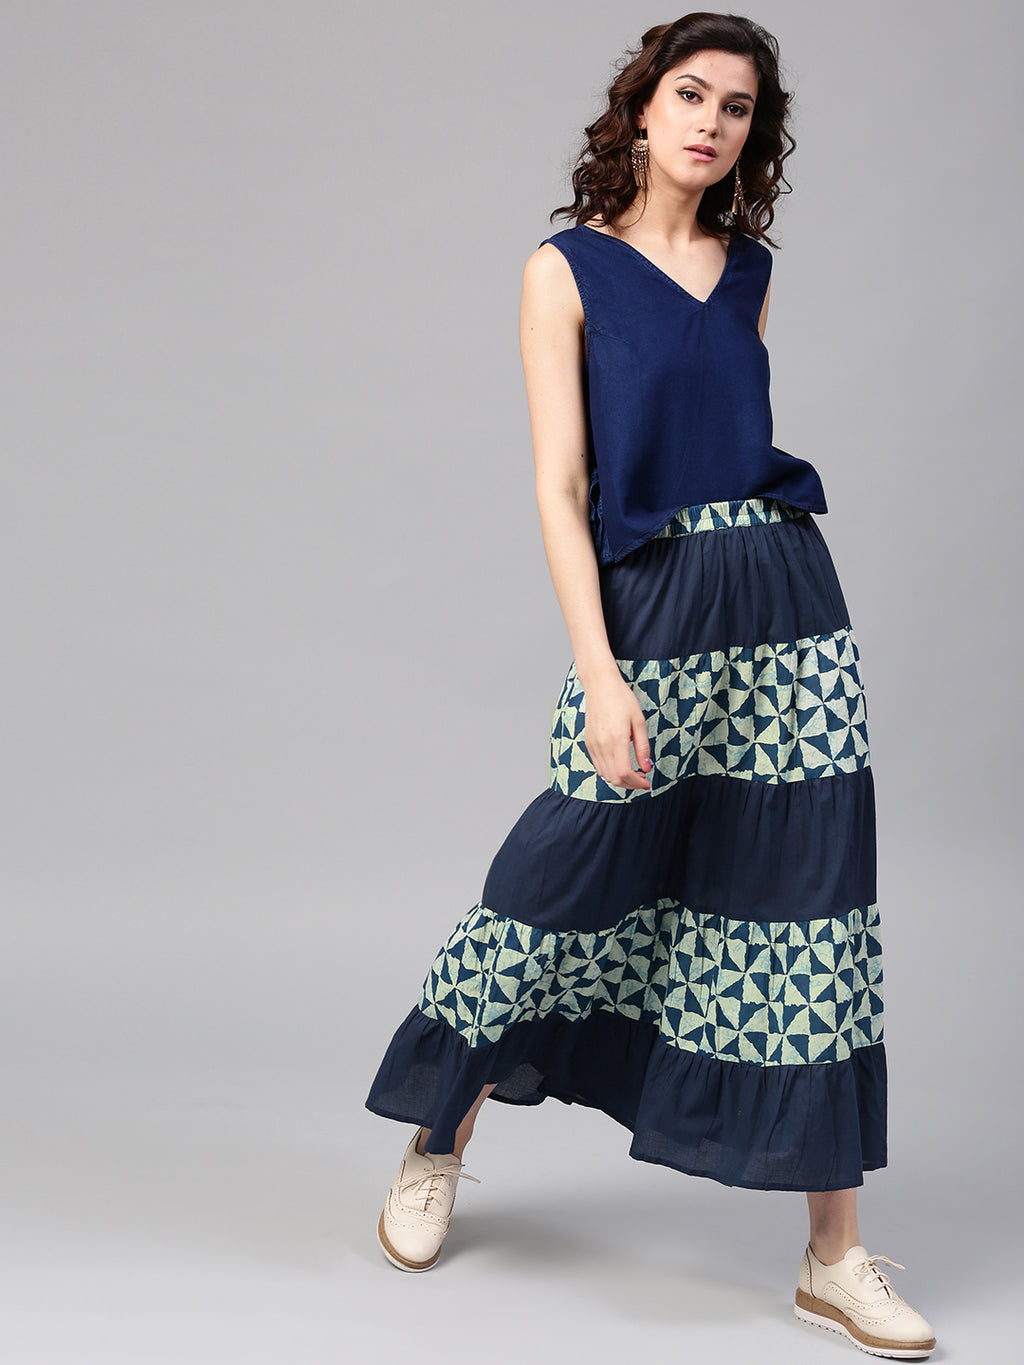 Navy Blue Printed Tiered Skirt | Znx4ever.com